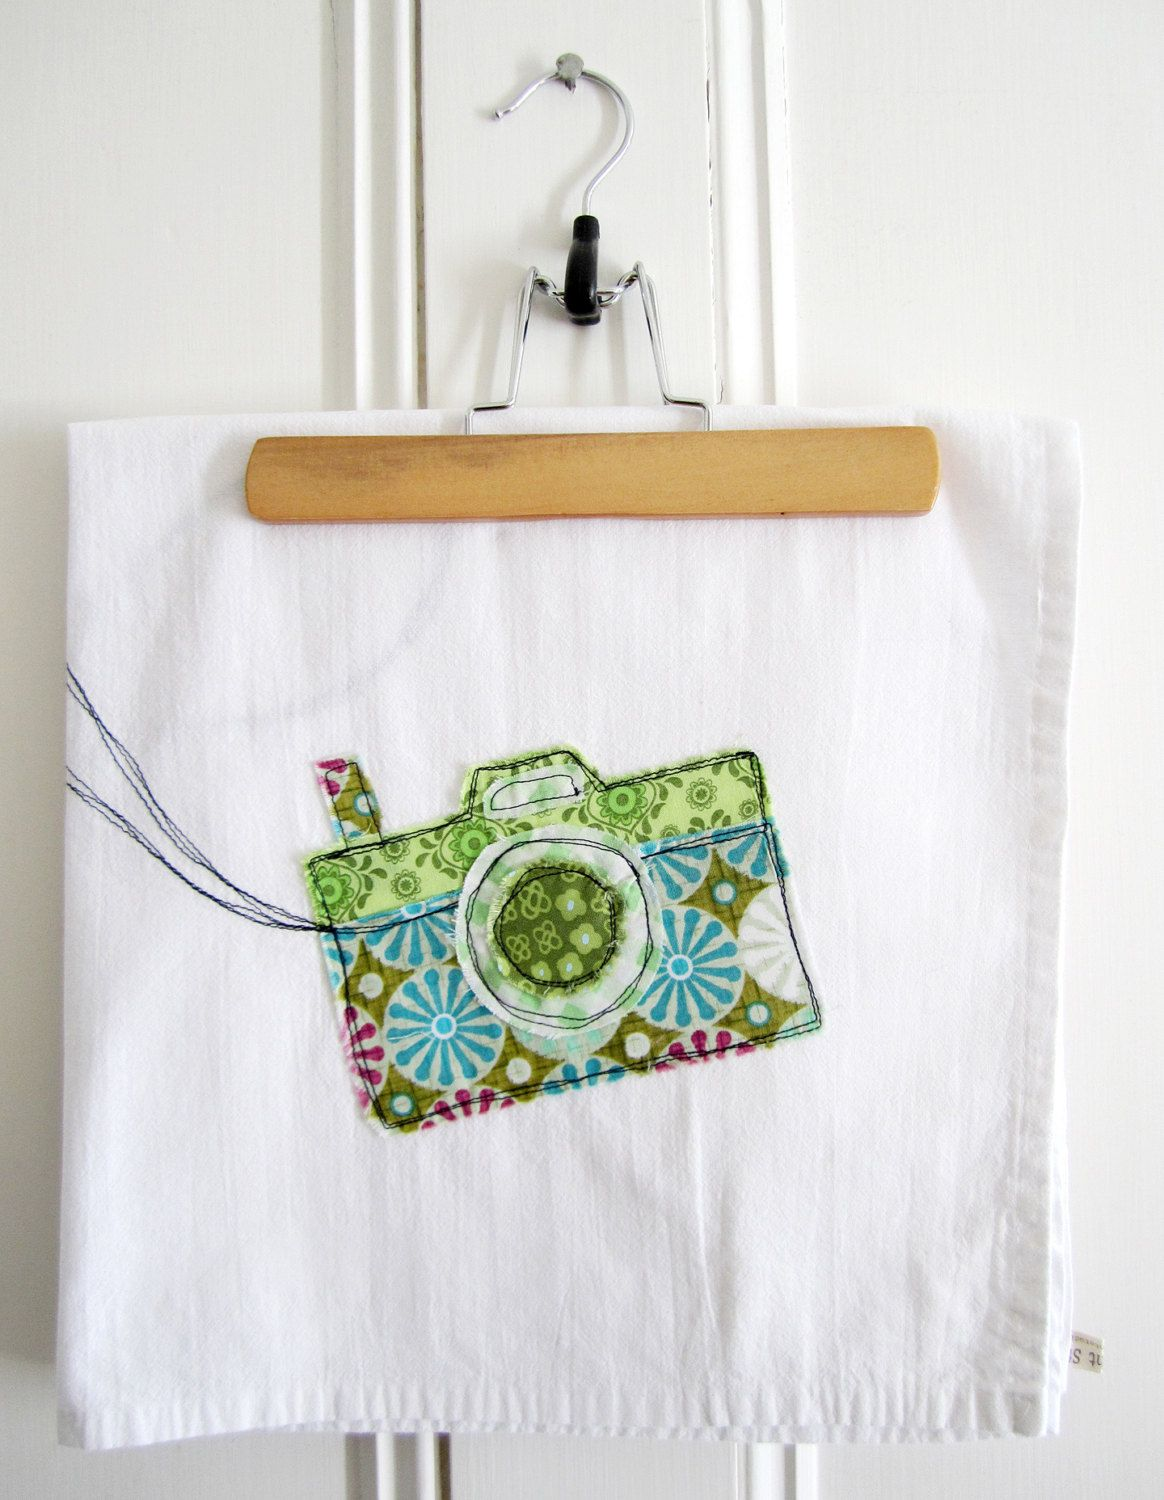 Appliqued Camera Tea Towel - 100% Cotton via Etsy | aplicaciones ...